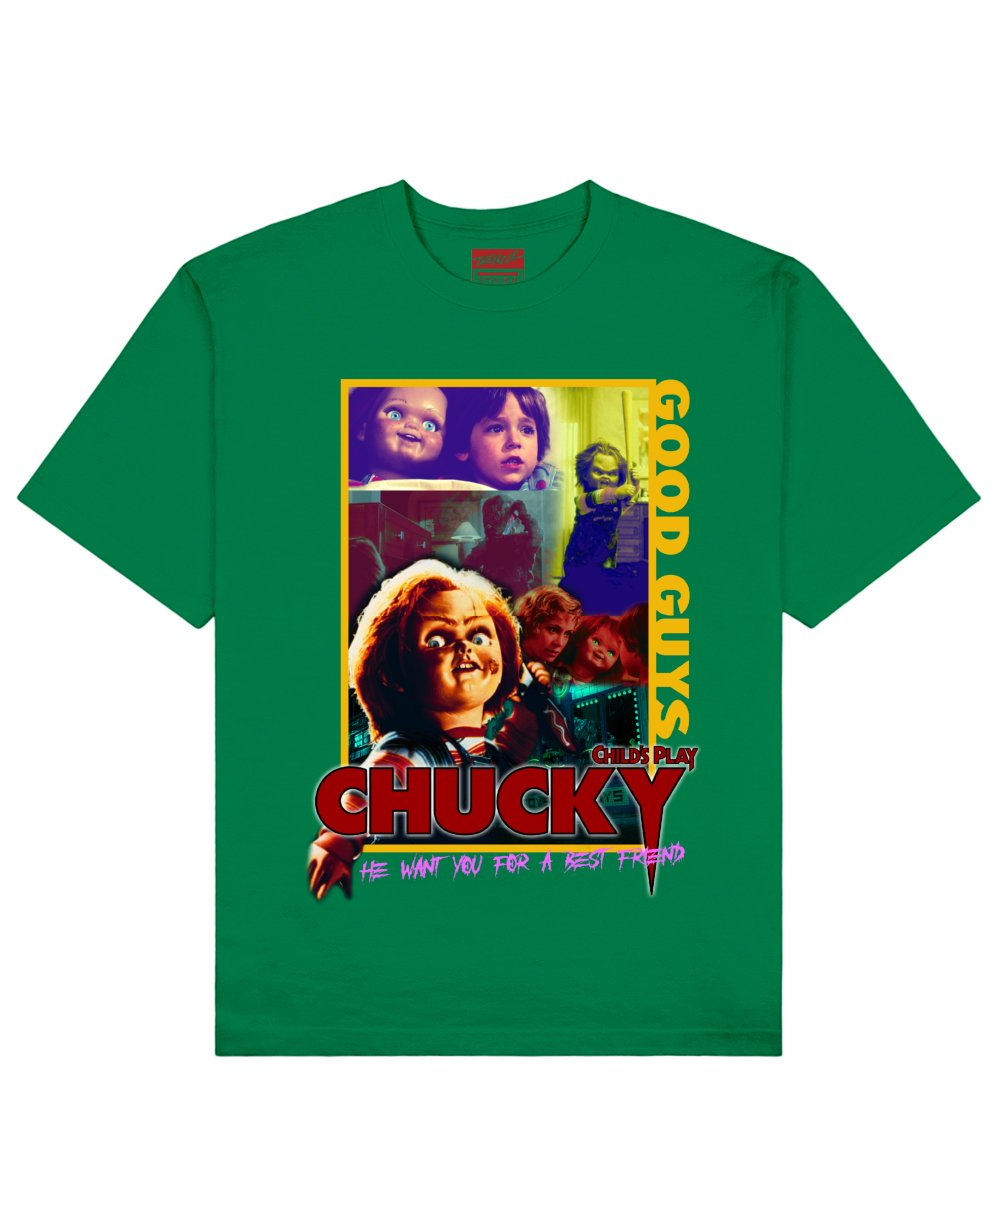 Child's Play : Chucky Print T-Shirt in Green